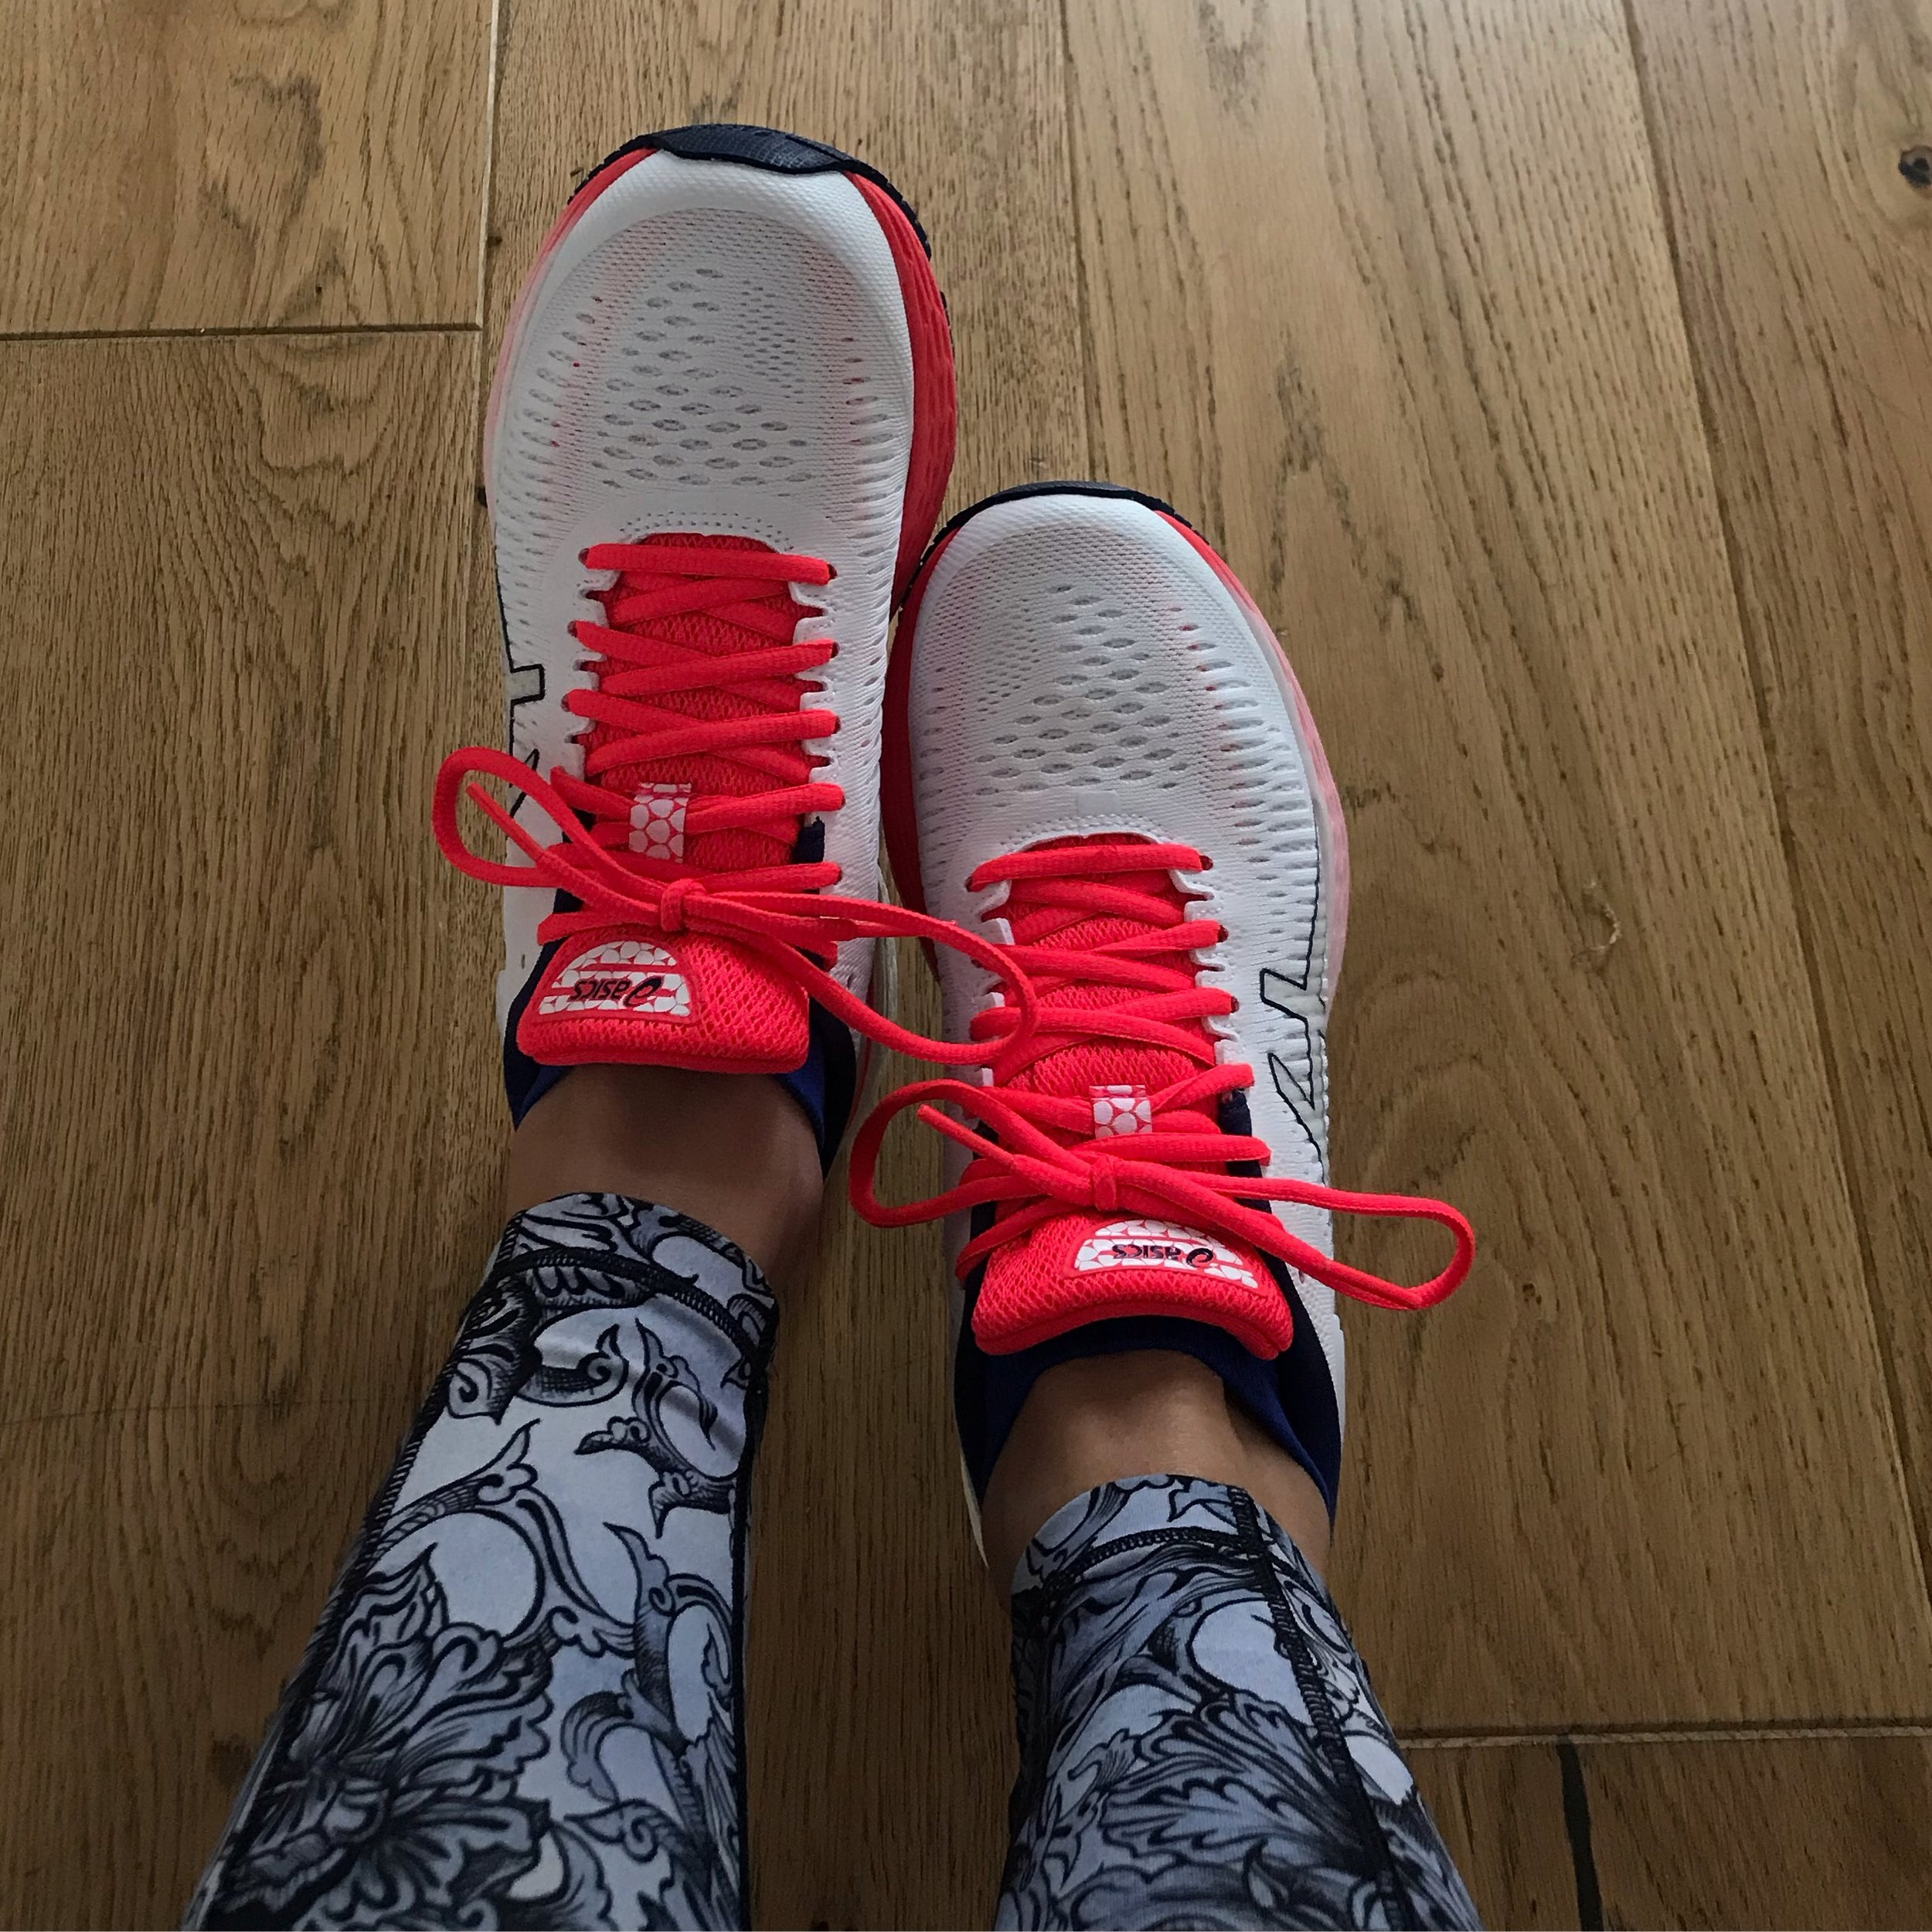 New trainers helped with the motivation too… but now they're not so pretty and white!